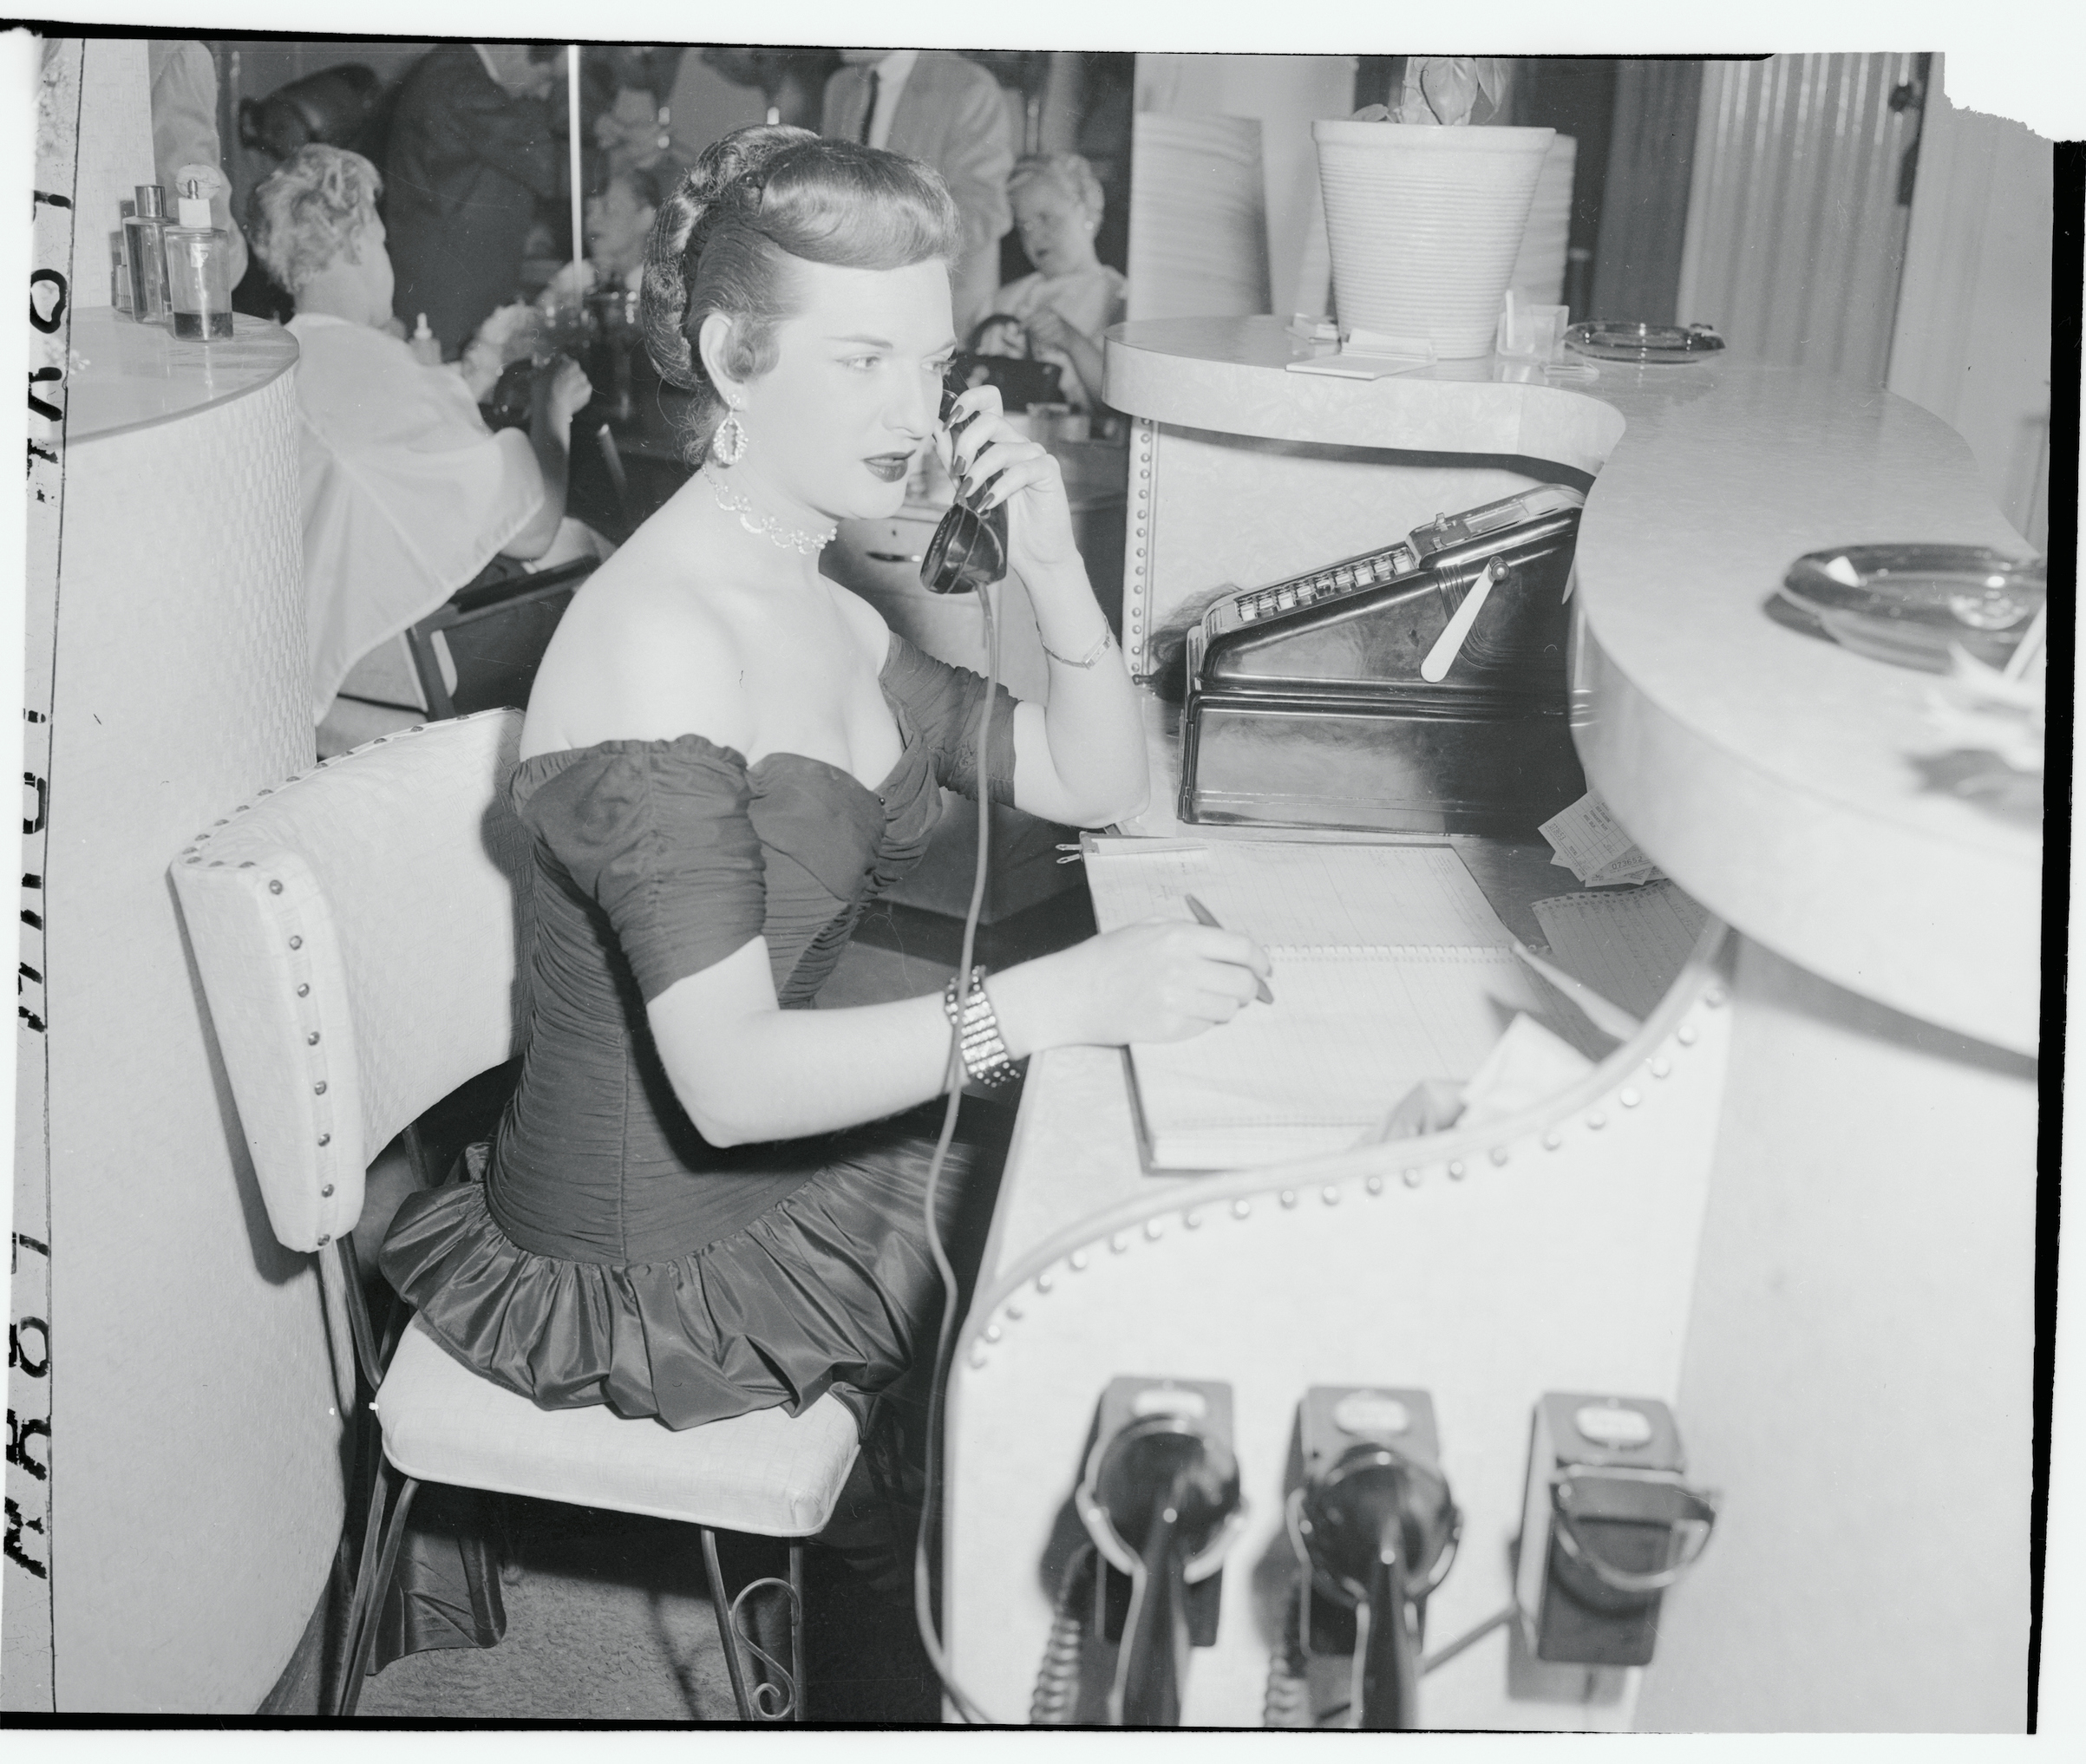 Charlotte McLeod is shown at her desk on her first day at a new job as a makeup artist and receptionist, on Feb. 10, 1955, in New York City. The original caption provided with the photo specified that she was an  Ex GI.